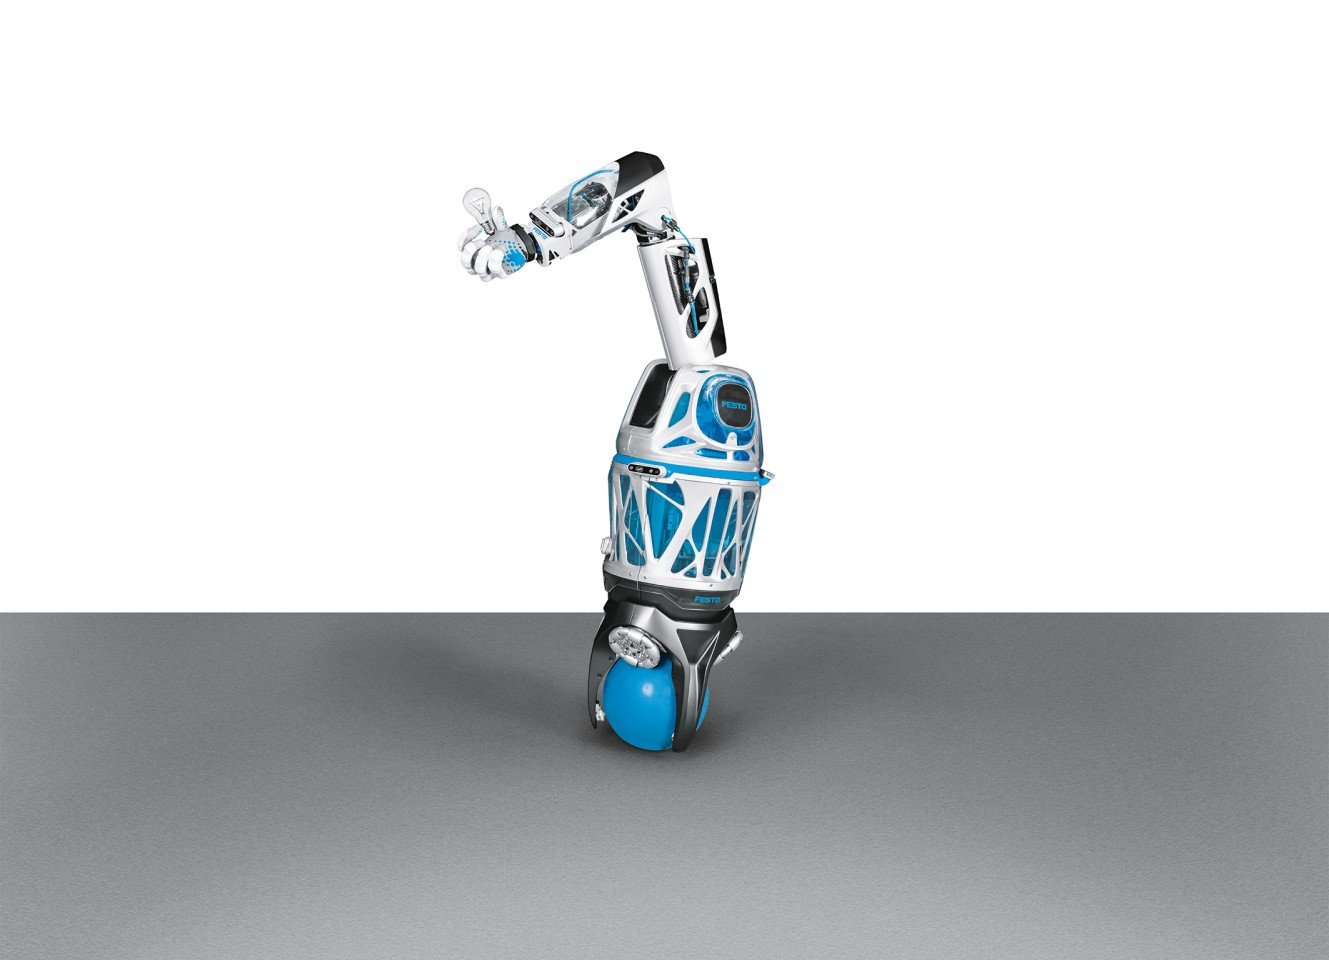 The modular BionicMobileAssistant is made up of a ballbot base, lightweight robot arm, and the BionicSoftHand 2.0 module